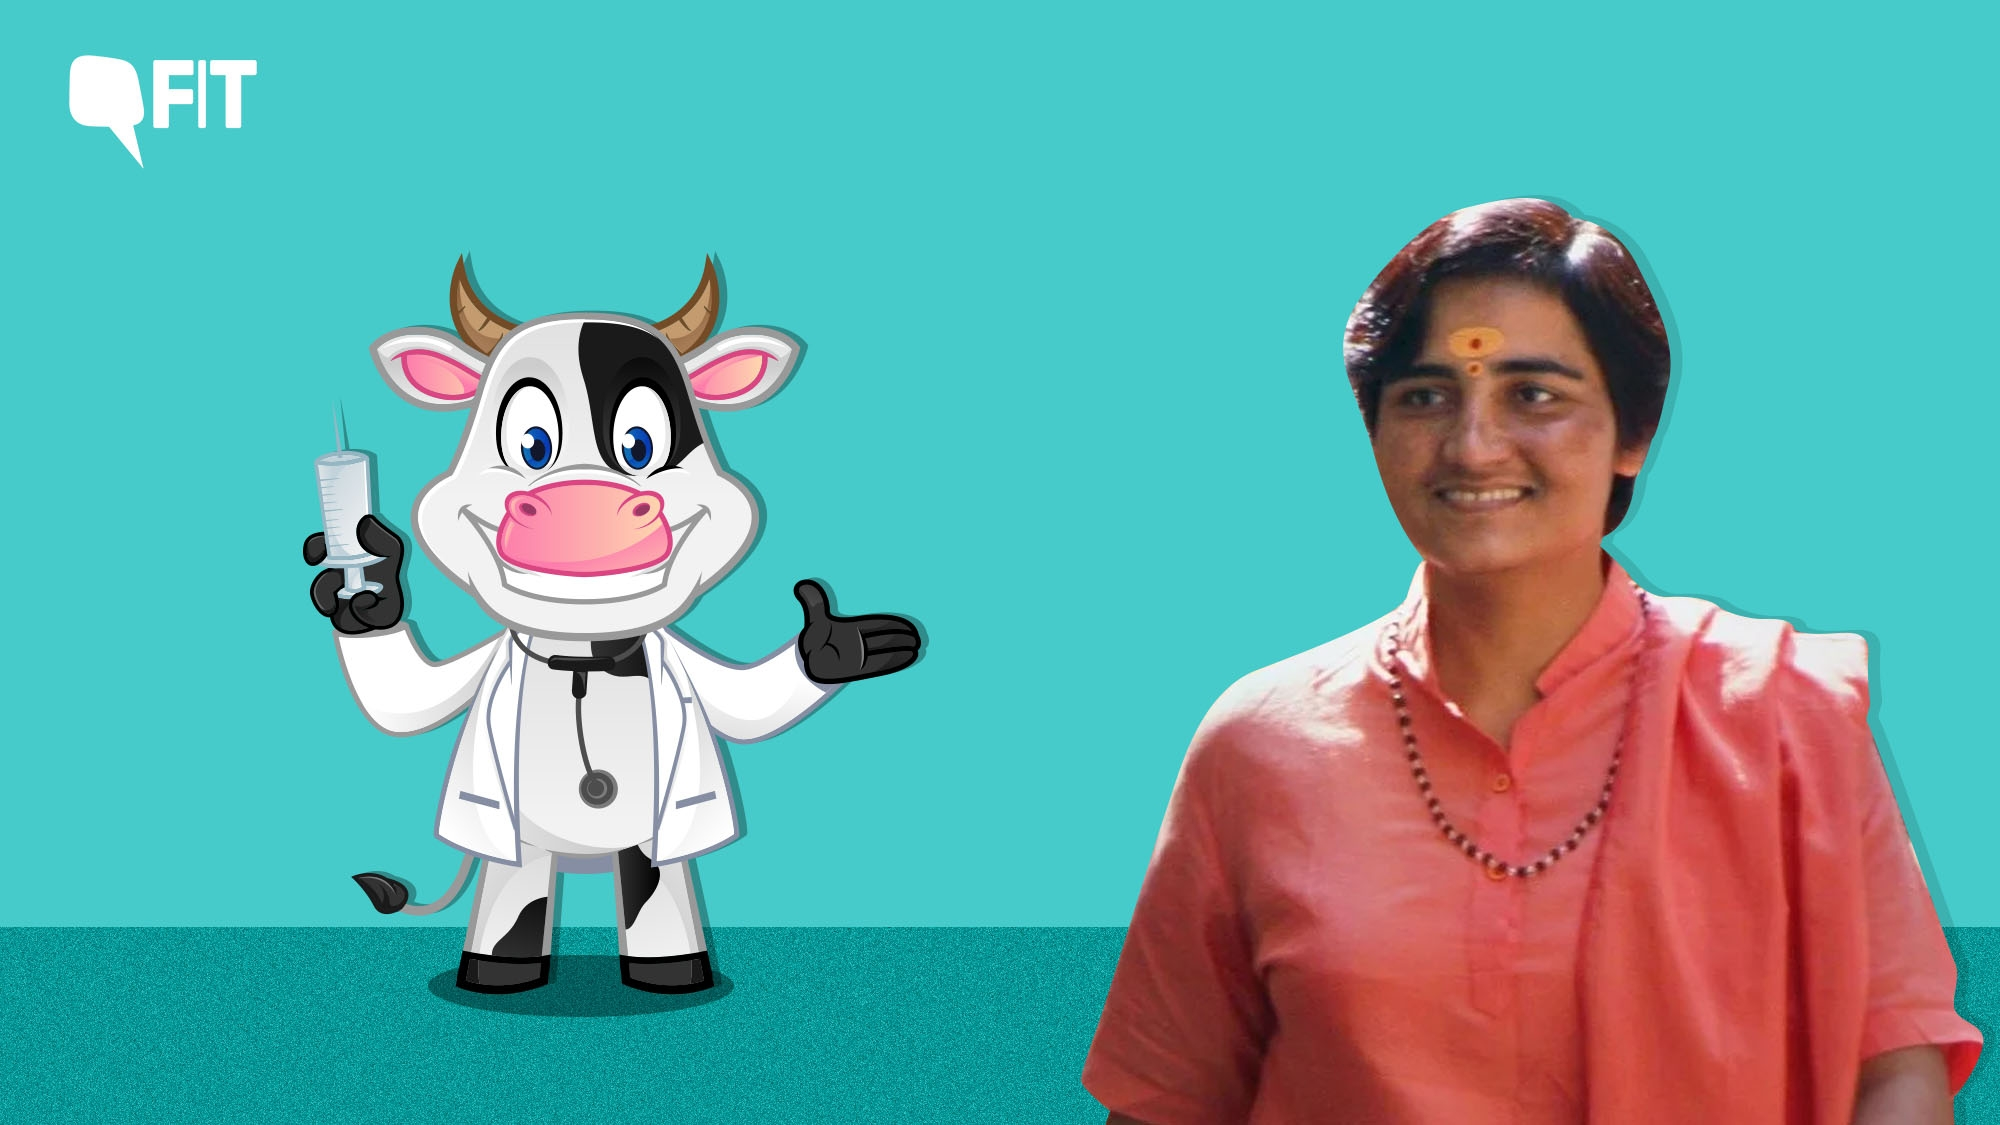 Sadhvi Pragya Says Cow Urine Cures Cancer. Here's a Fact Check